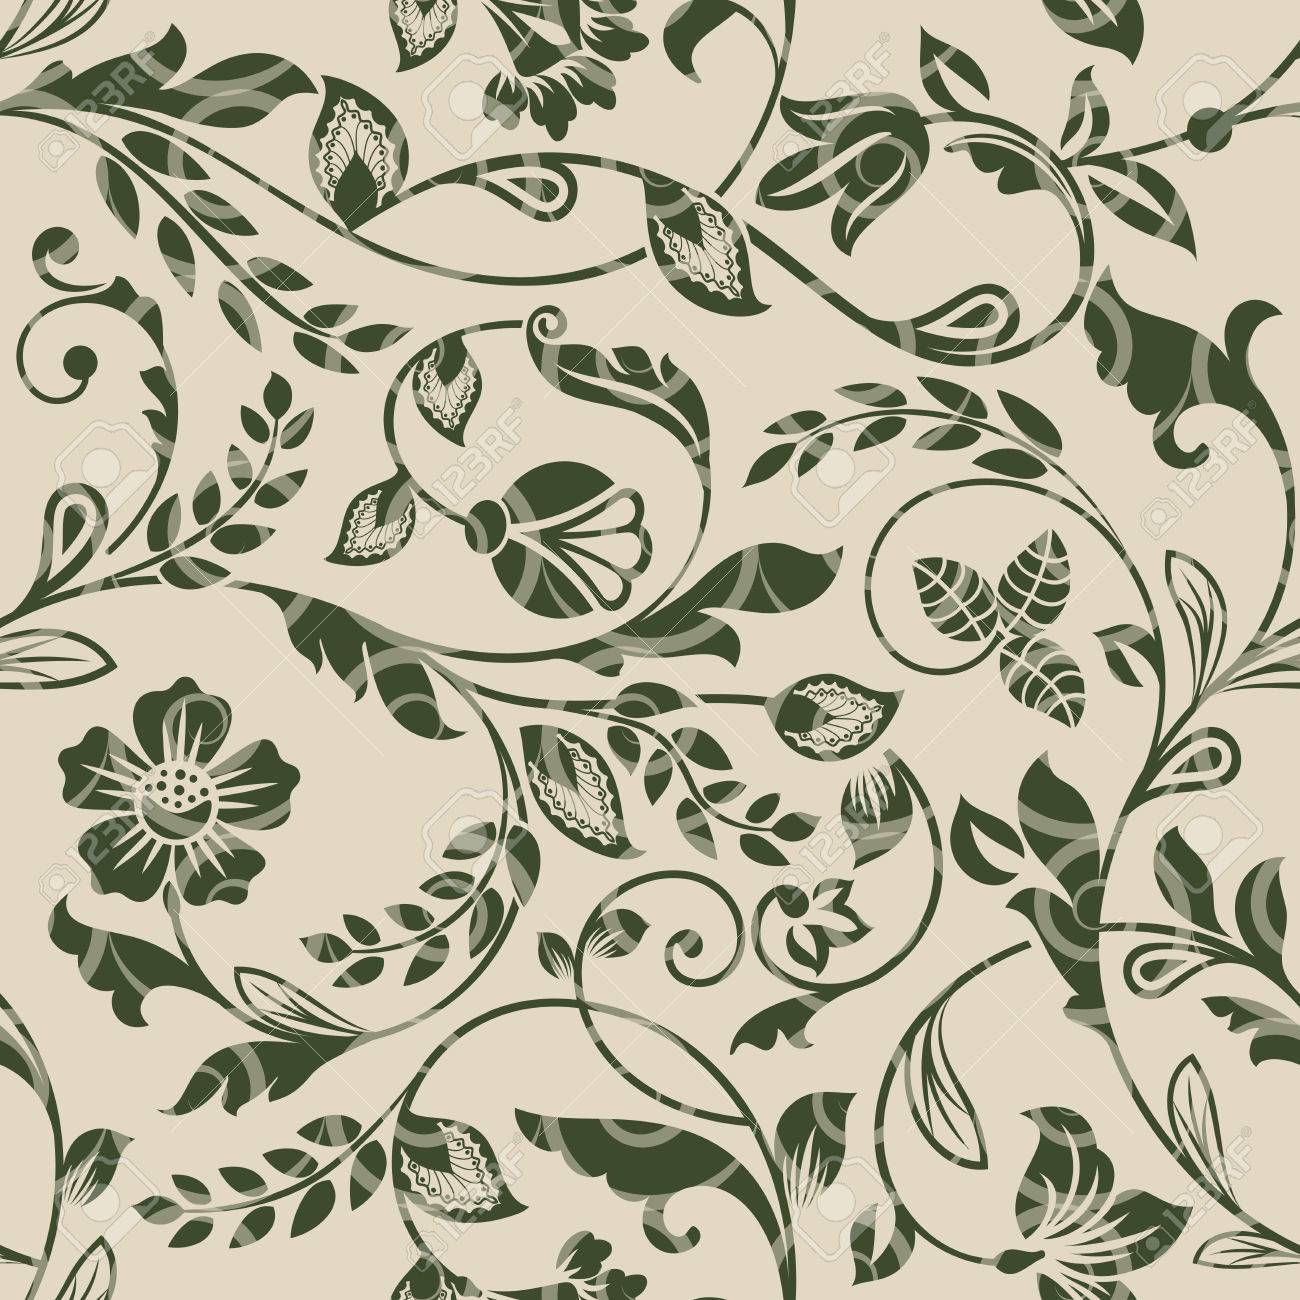 Seamless Beige And Green Floral Vector Wallpaper Pattern Seamless Royalty Free Cliparts Vectors And Stock Illustration Image 80227455